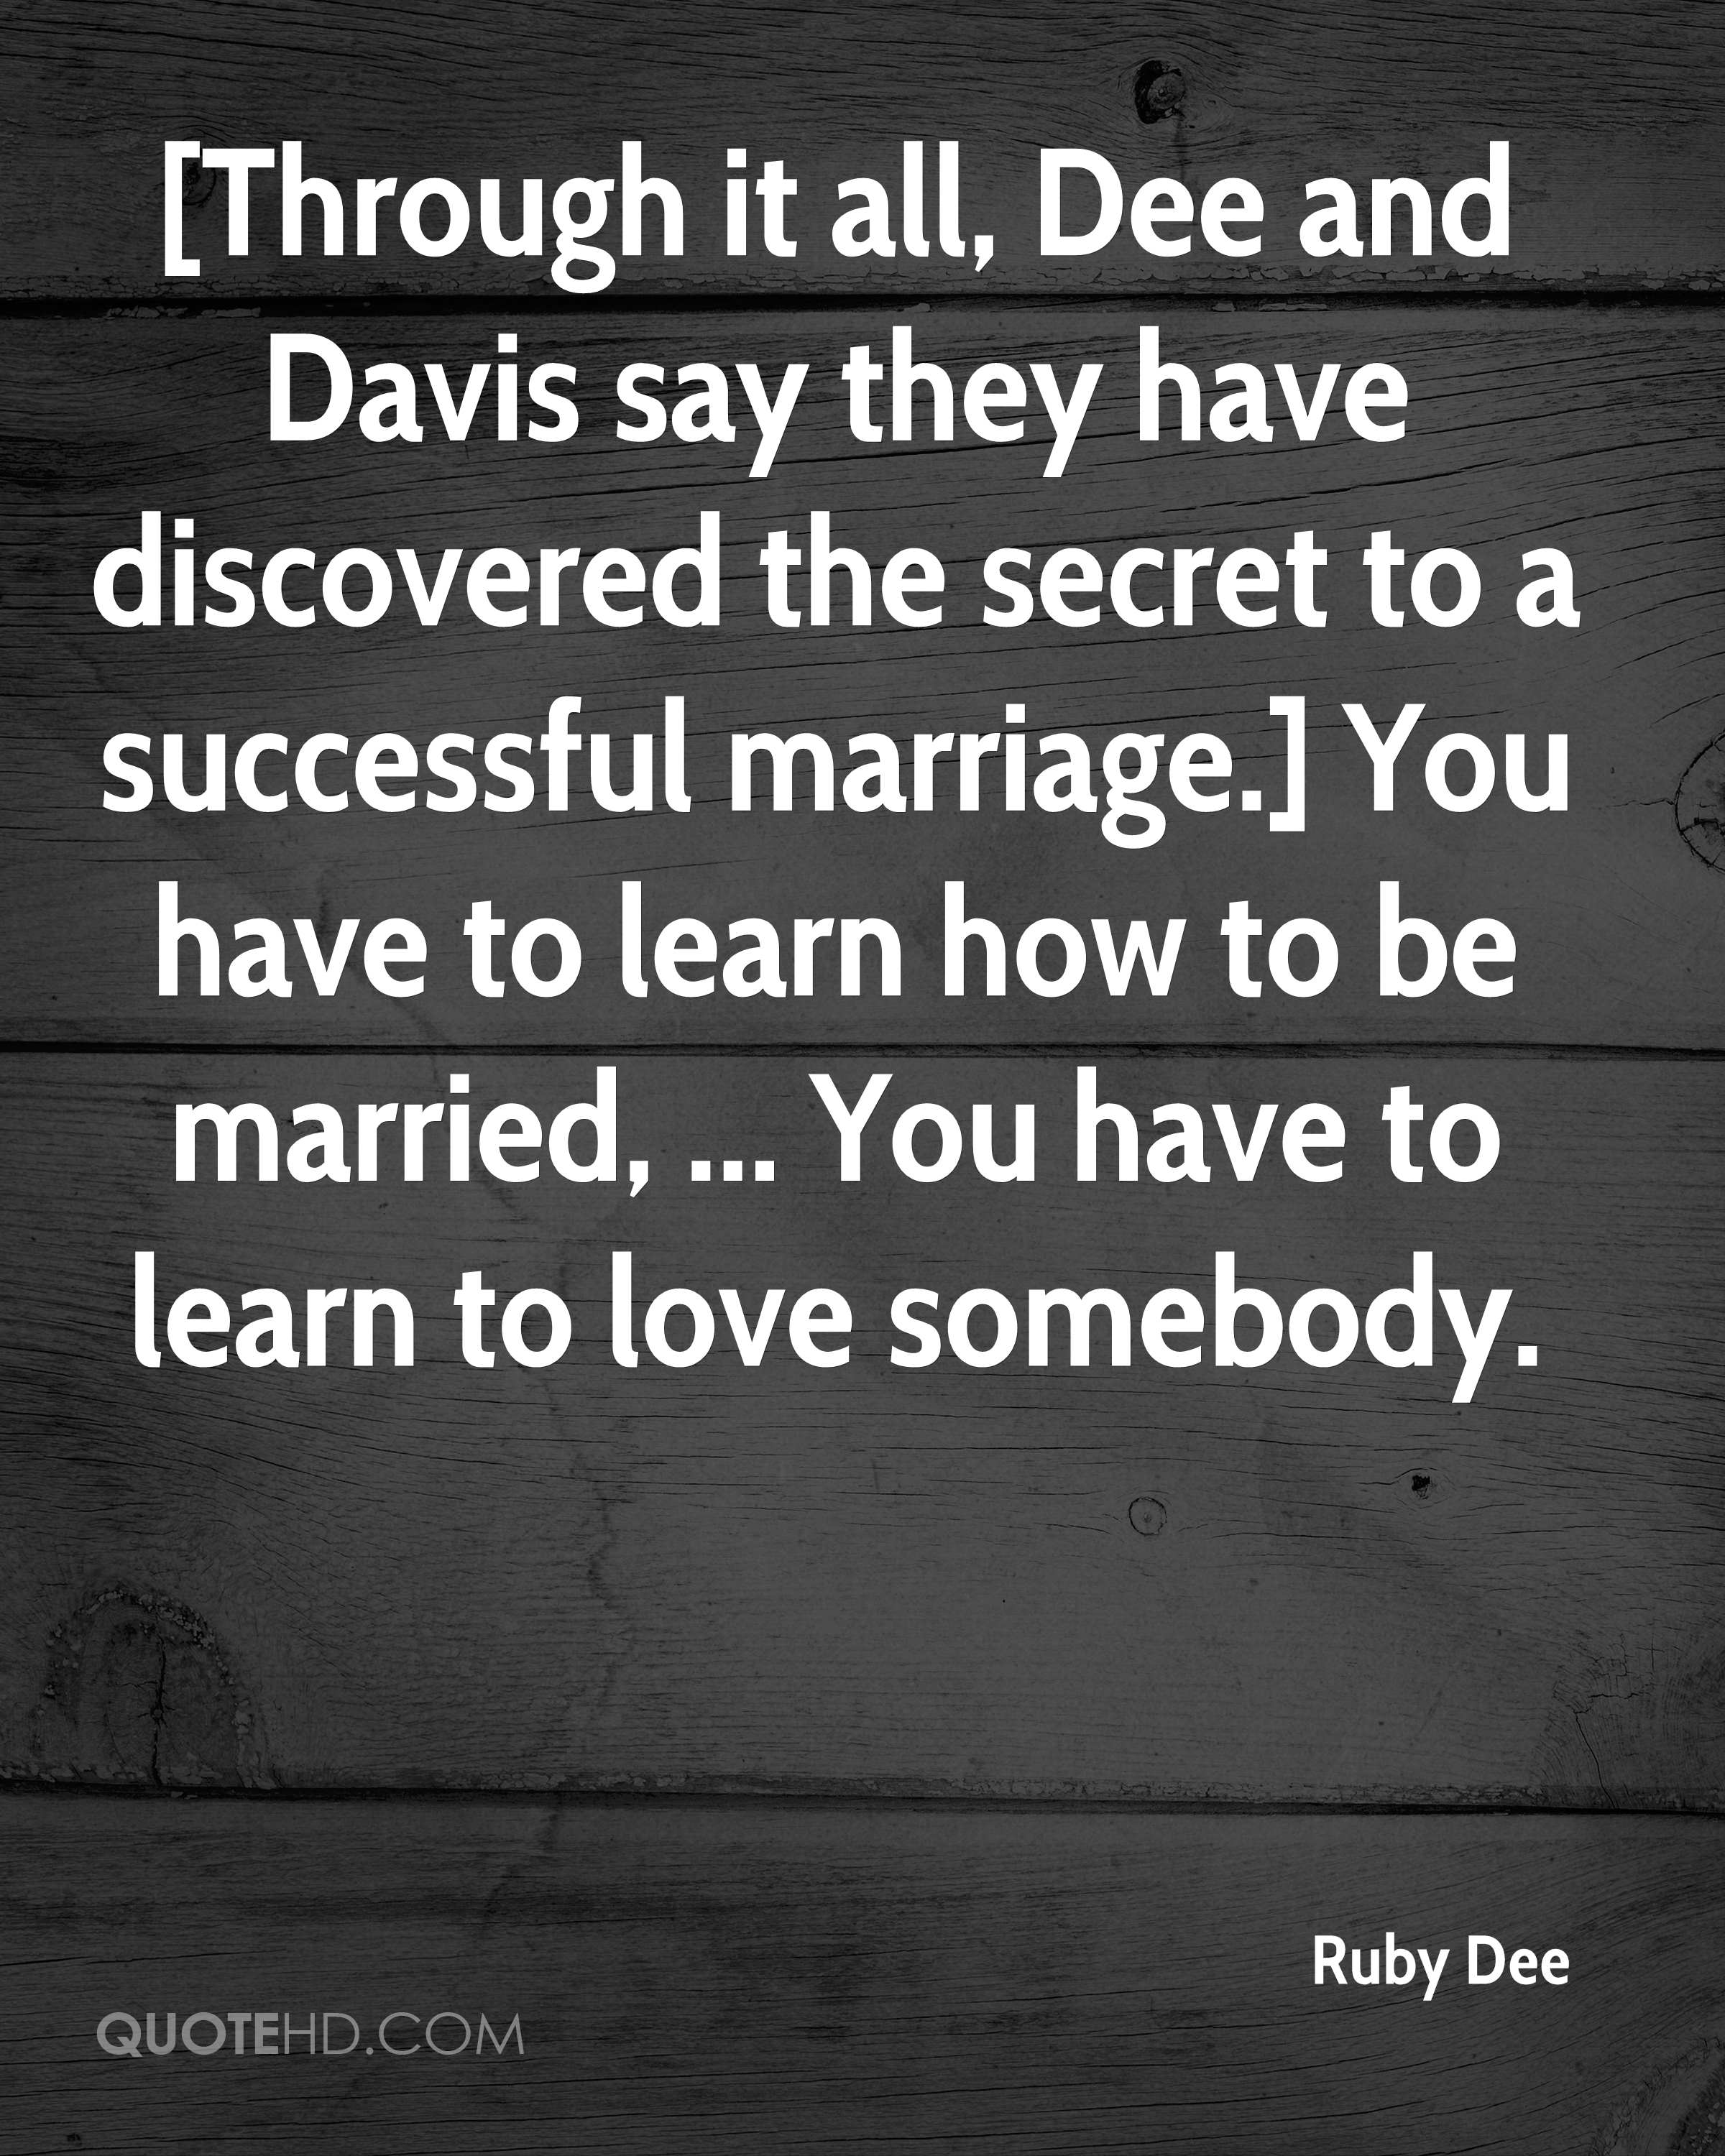 [Through it all, Dee and Davis say they have discovered the secret to a successful marriage.] You have to learn how to be married, ... You have to learn to love somebody.